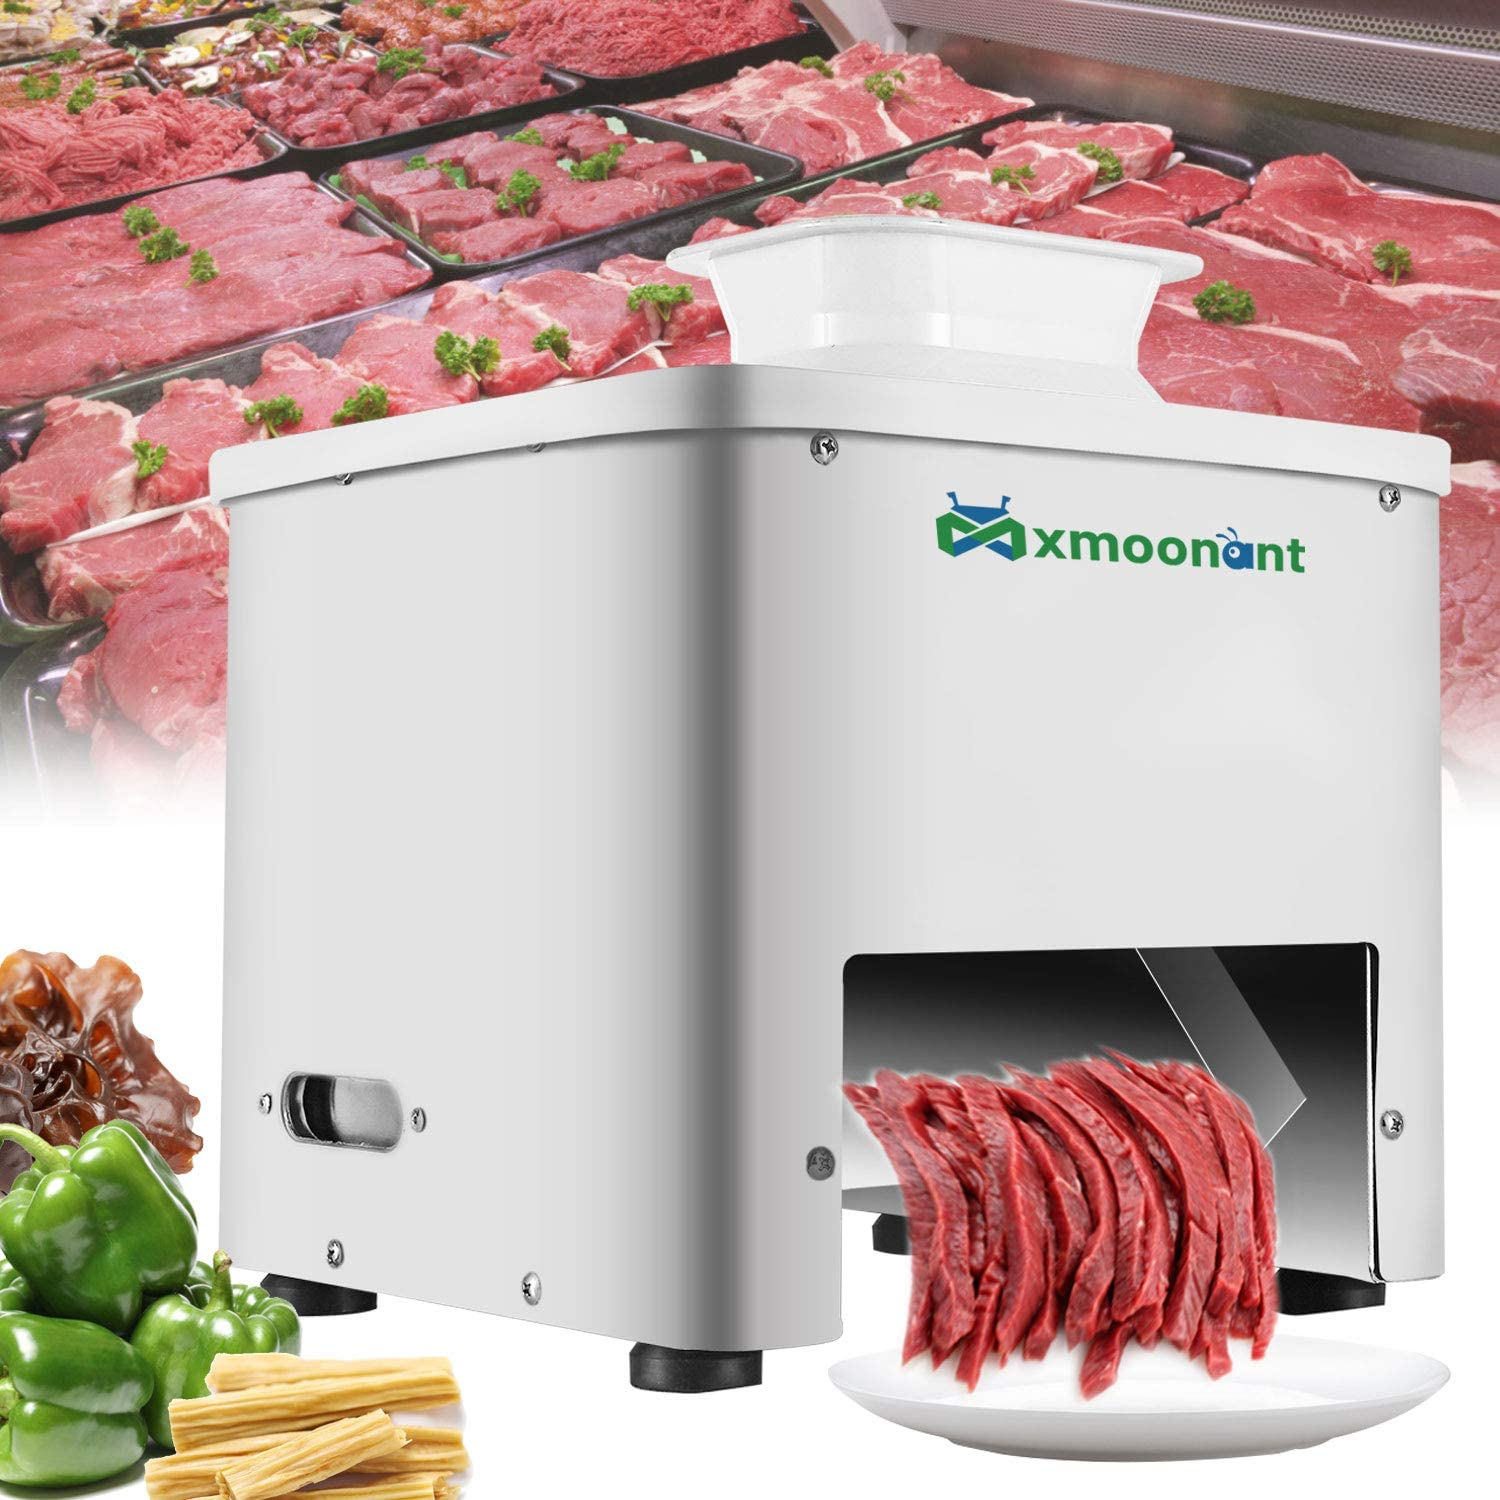 Mxmoonant Meat Cutter Machine 10mm Thickness Commercial Meat Slicer for Restaurant Canteen Supermarket Kitchen 110V US Plug